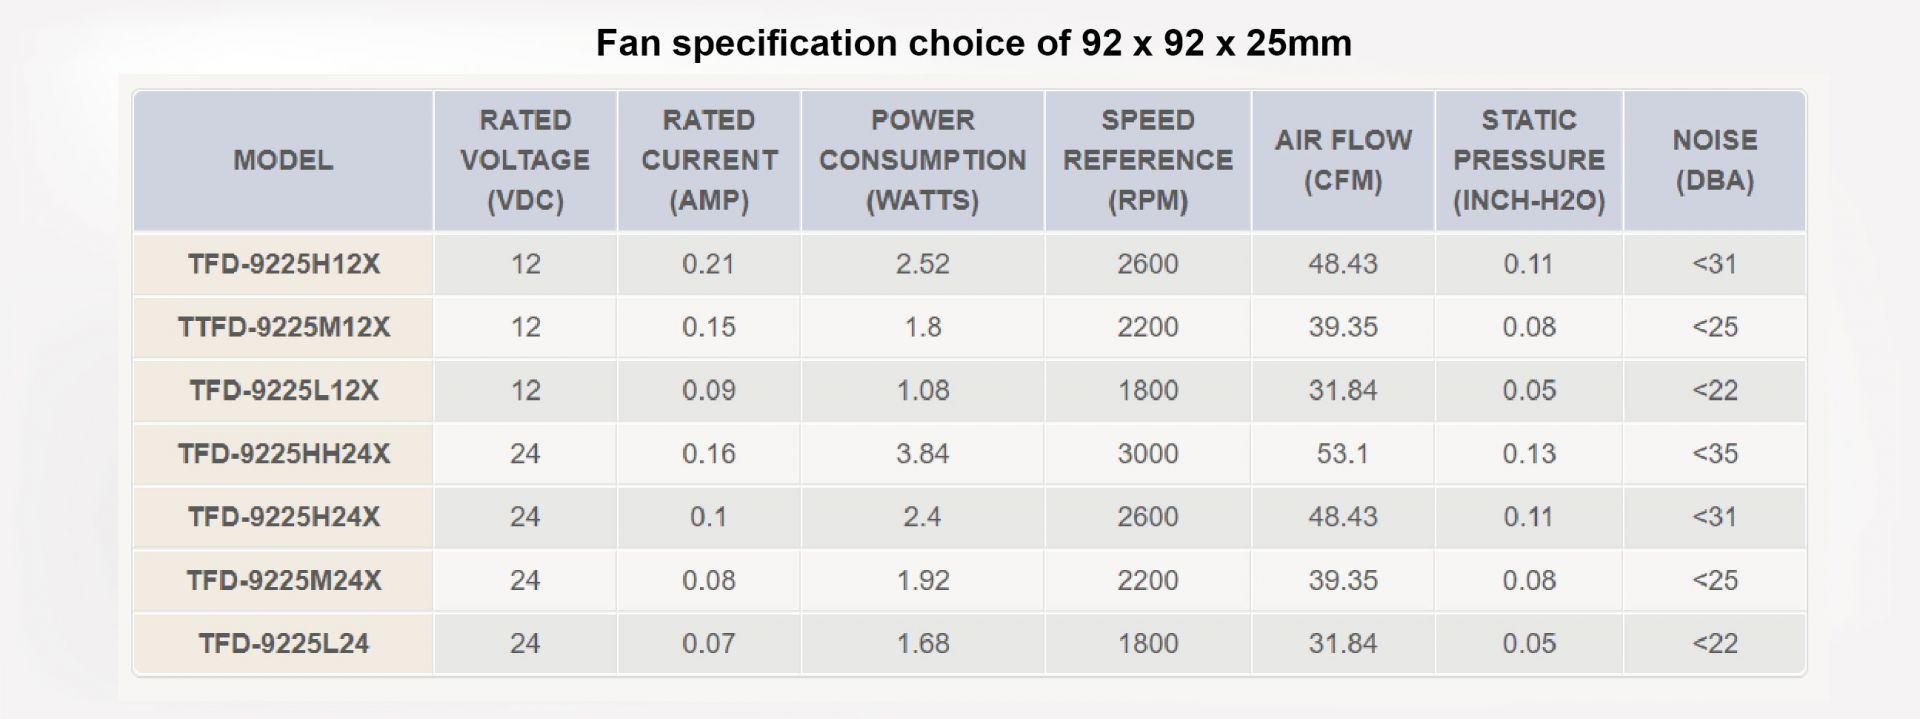 Customize fan specification